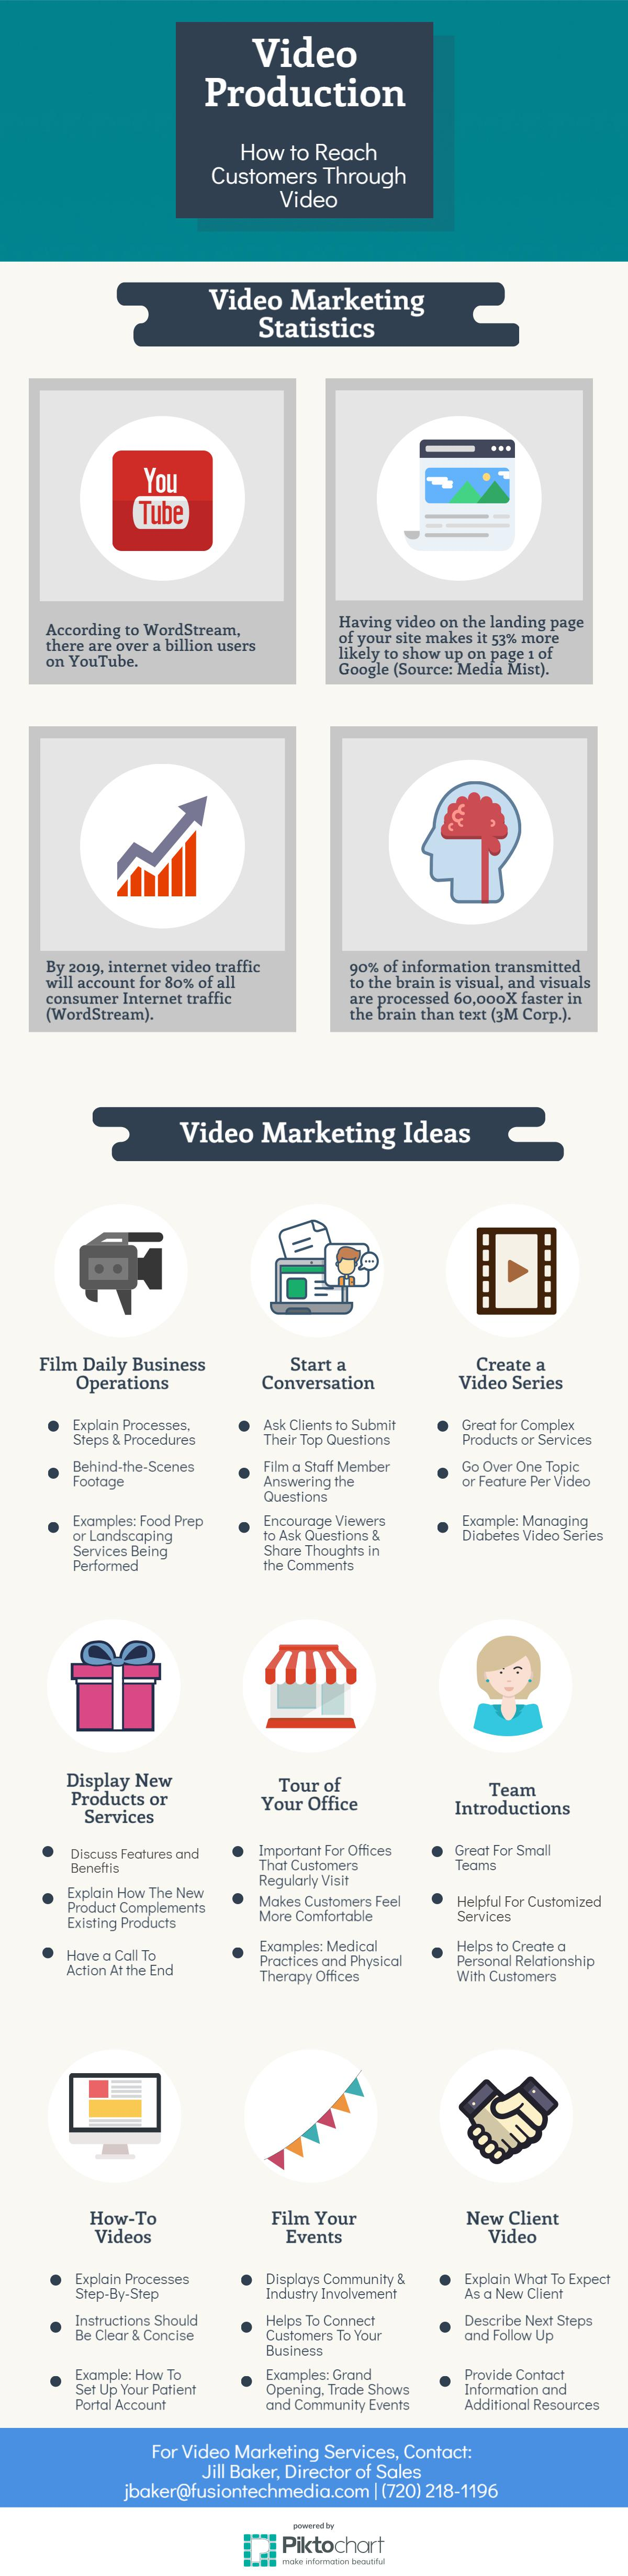 Reach Customers Through Video Marketing Infographic